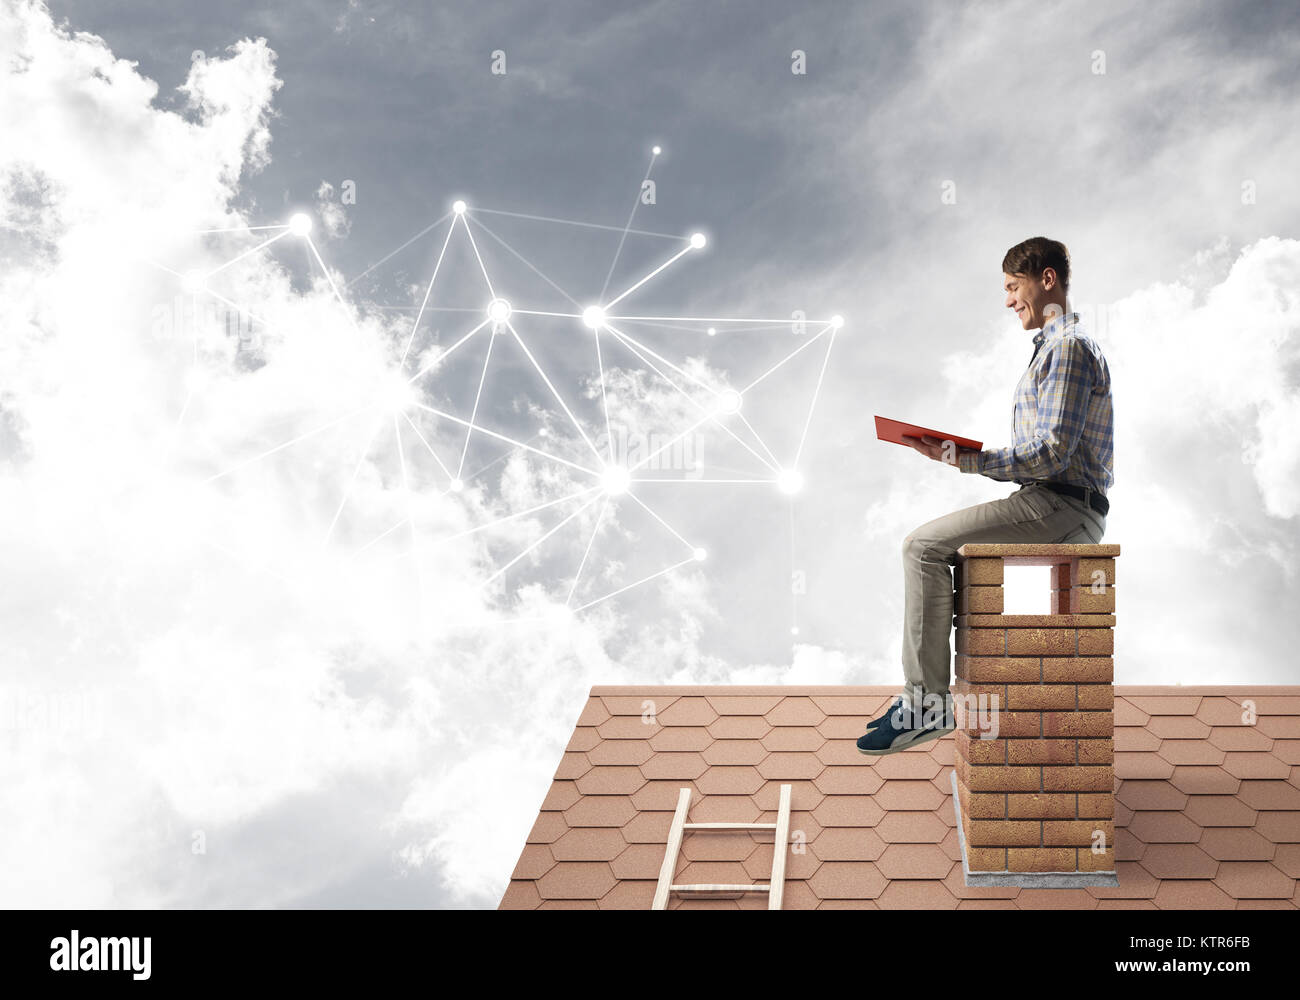 L'homme sur le toit de brique reading book et le concept de lien social Photo Stock